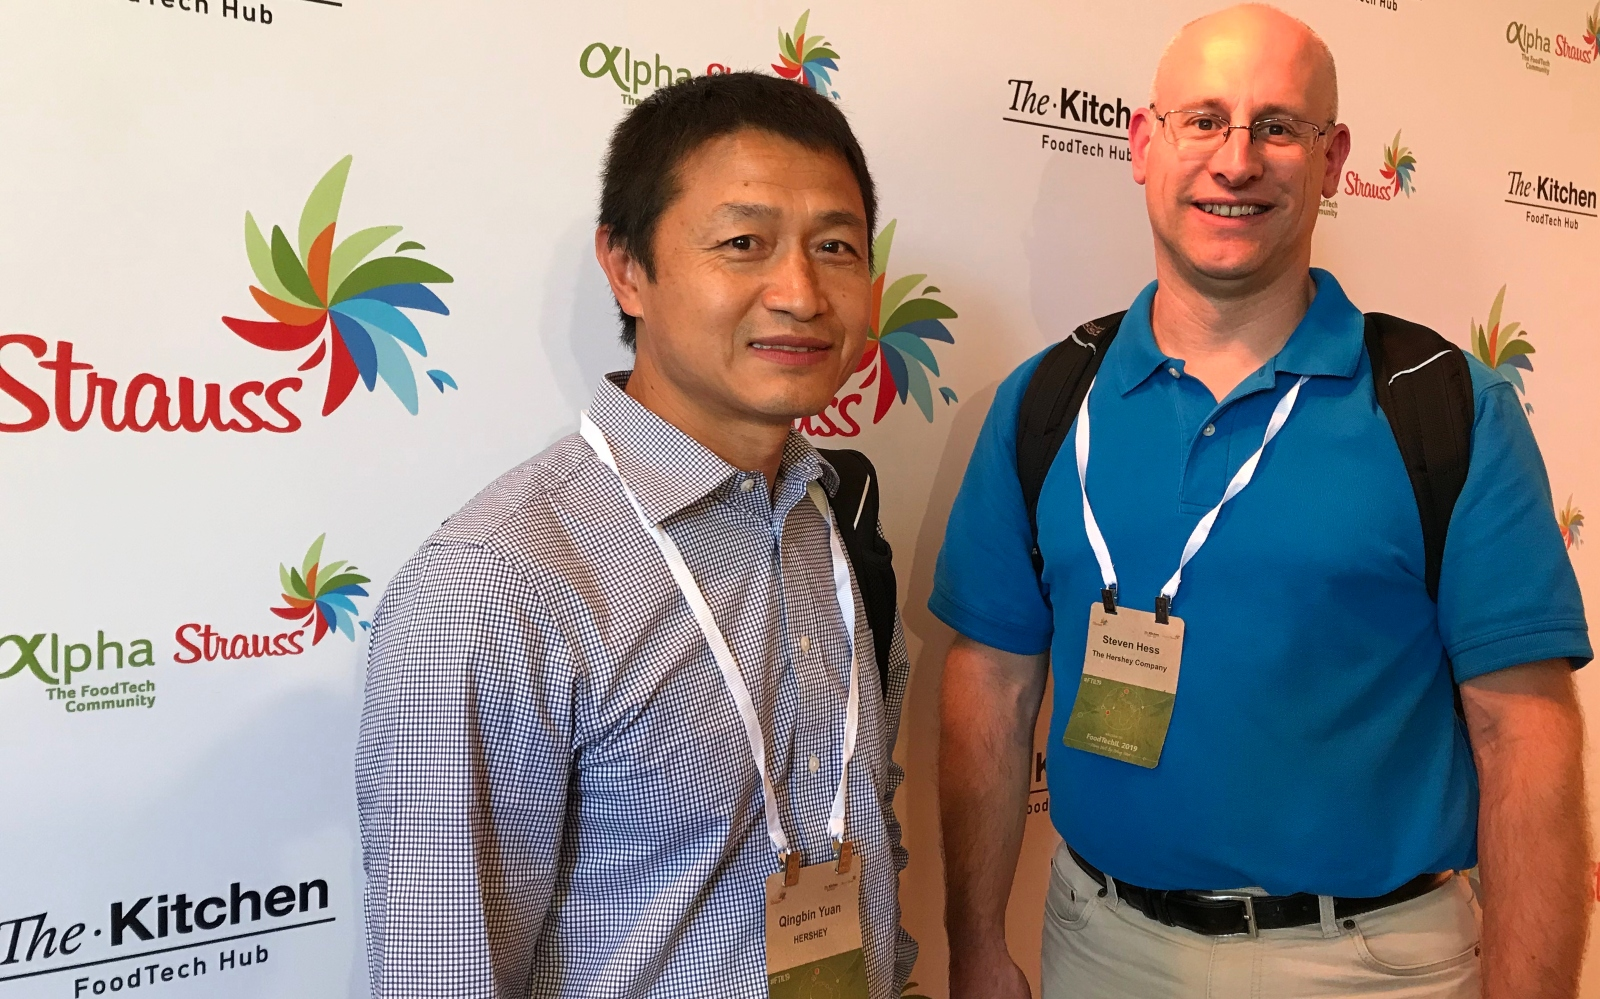 Qingbin Yuan and Steven Hess, R&D directors at Hershey, at FoodTechIL 2019. Photo by Abigail Klein Leichman